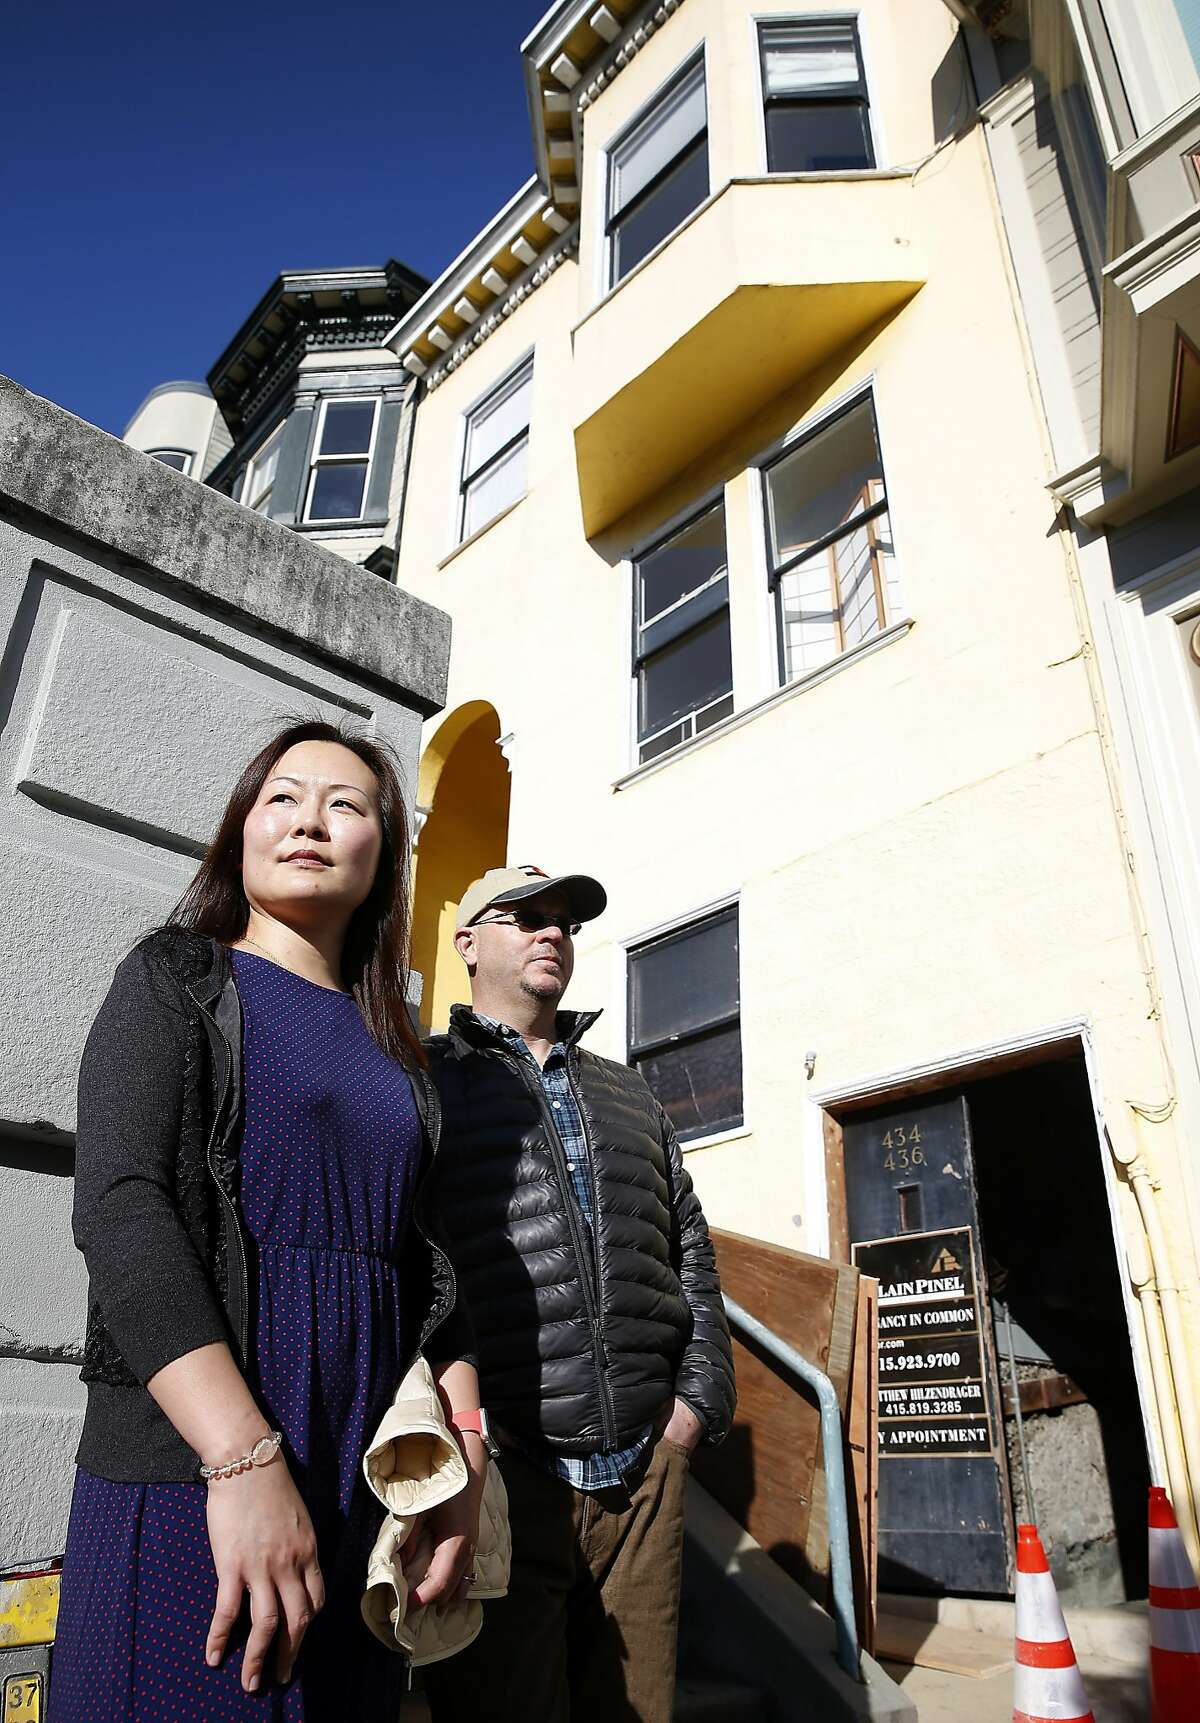 Michelle Huang and Tom Payne stop in front of the building on Vallejo Street where they own three TIC units in San Francisco, Calif. on Thursday, Feb. 4, 2016. They are embroiled in a feud with the owner of one of the other units who rented one of theirs through Airbnb and is now claiming residency asserting tenants rights.